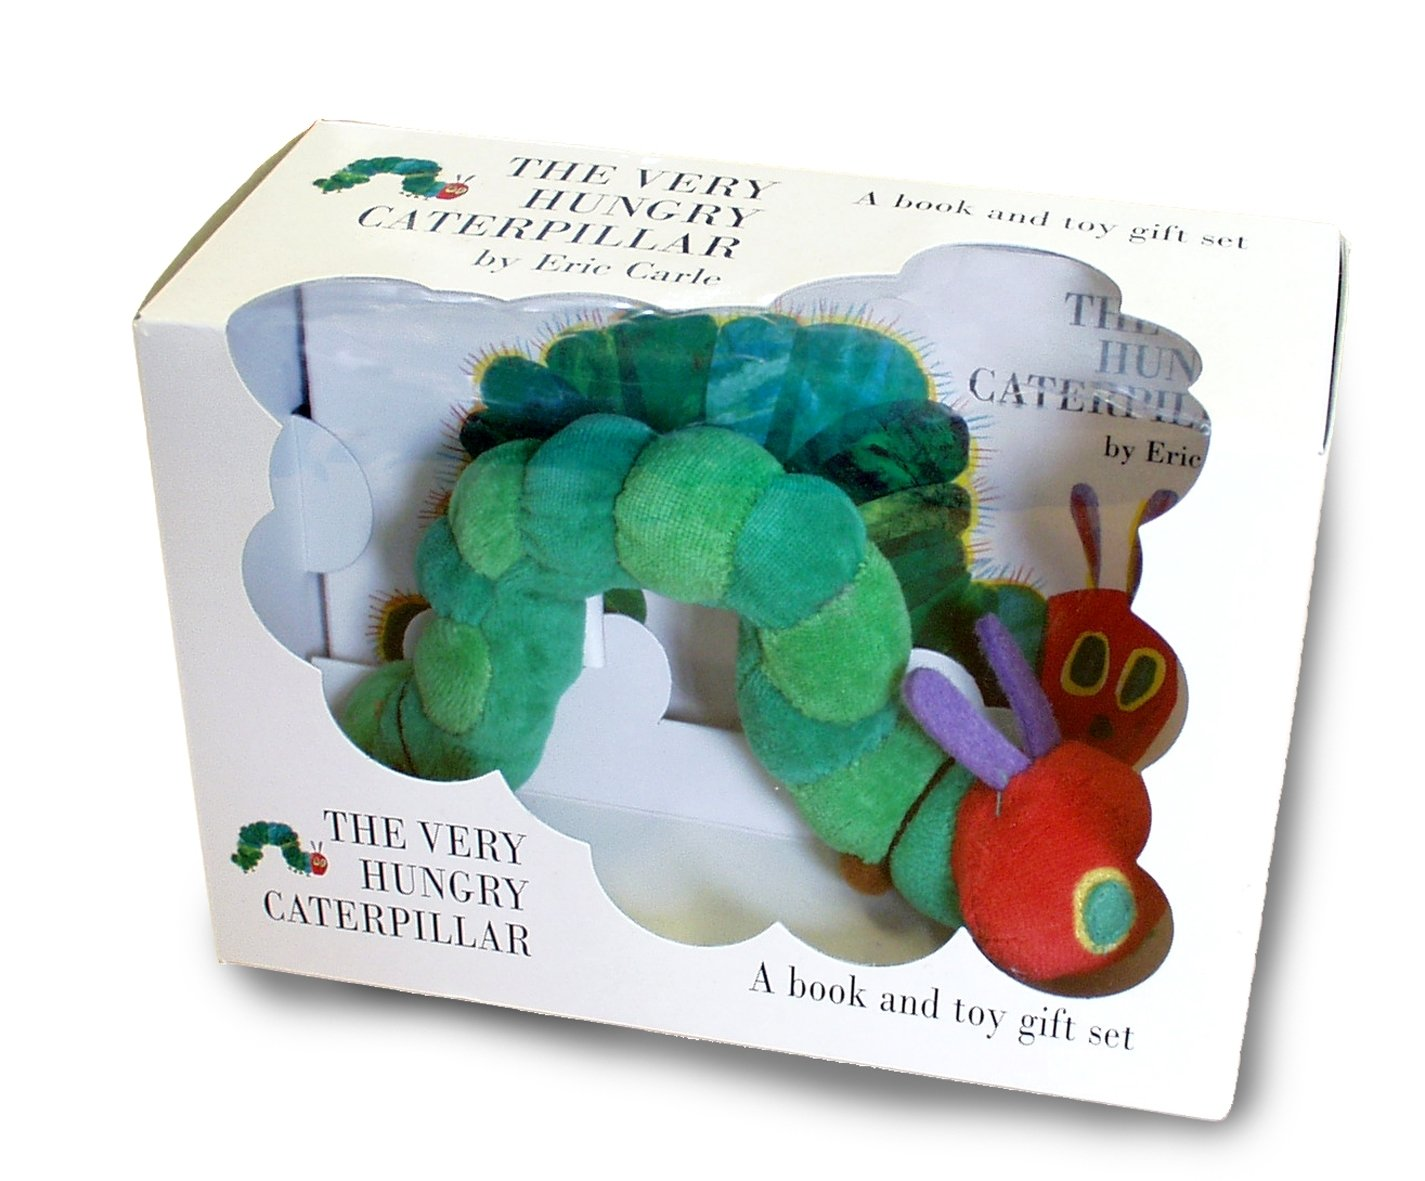 The Very Hungry Caterpillar: Book and Toy Gift Set in a box for toddlers